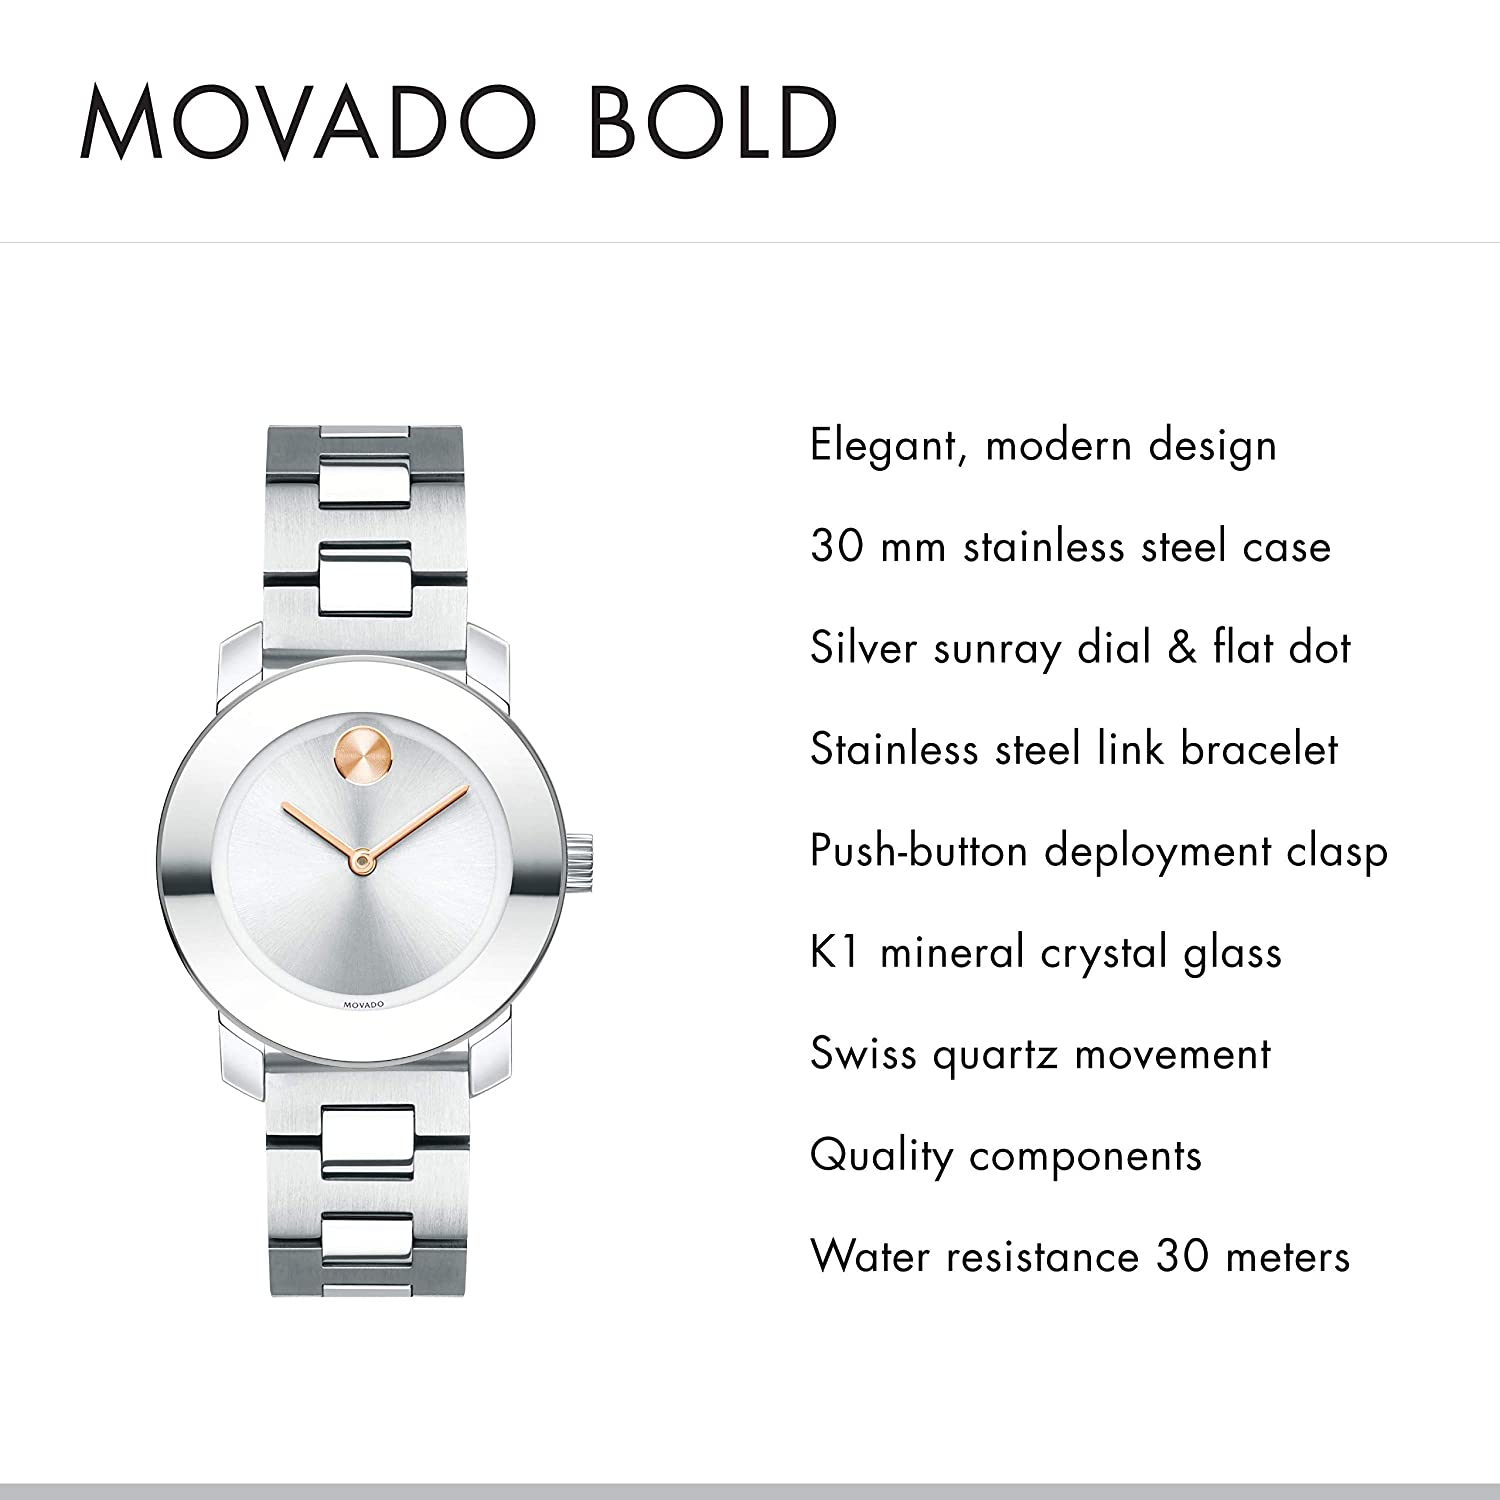 Movado Women s BOLD Iconic Metal Stainless Watch with a Flat Dot Sunray Dial, Silver Grey 3600433